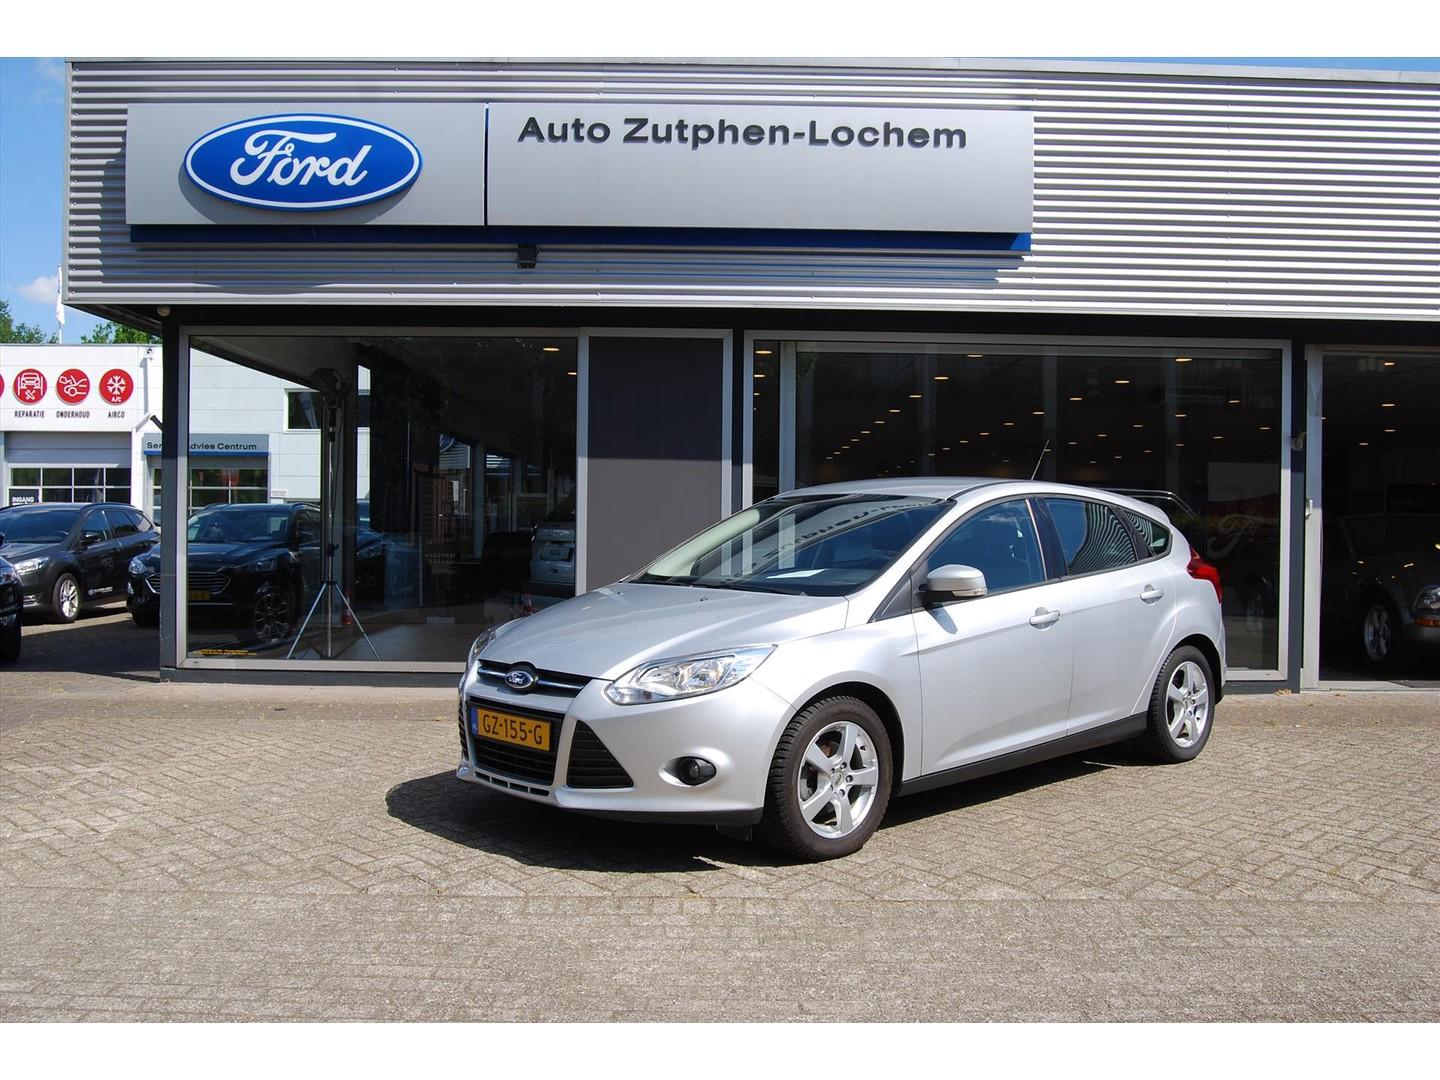 Ford Focus 1.0 ecoboost trekhaak / voorruitverwarming /aut airco